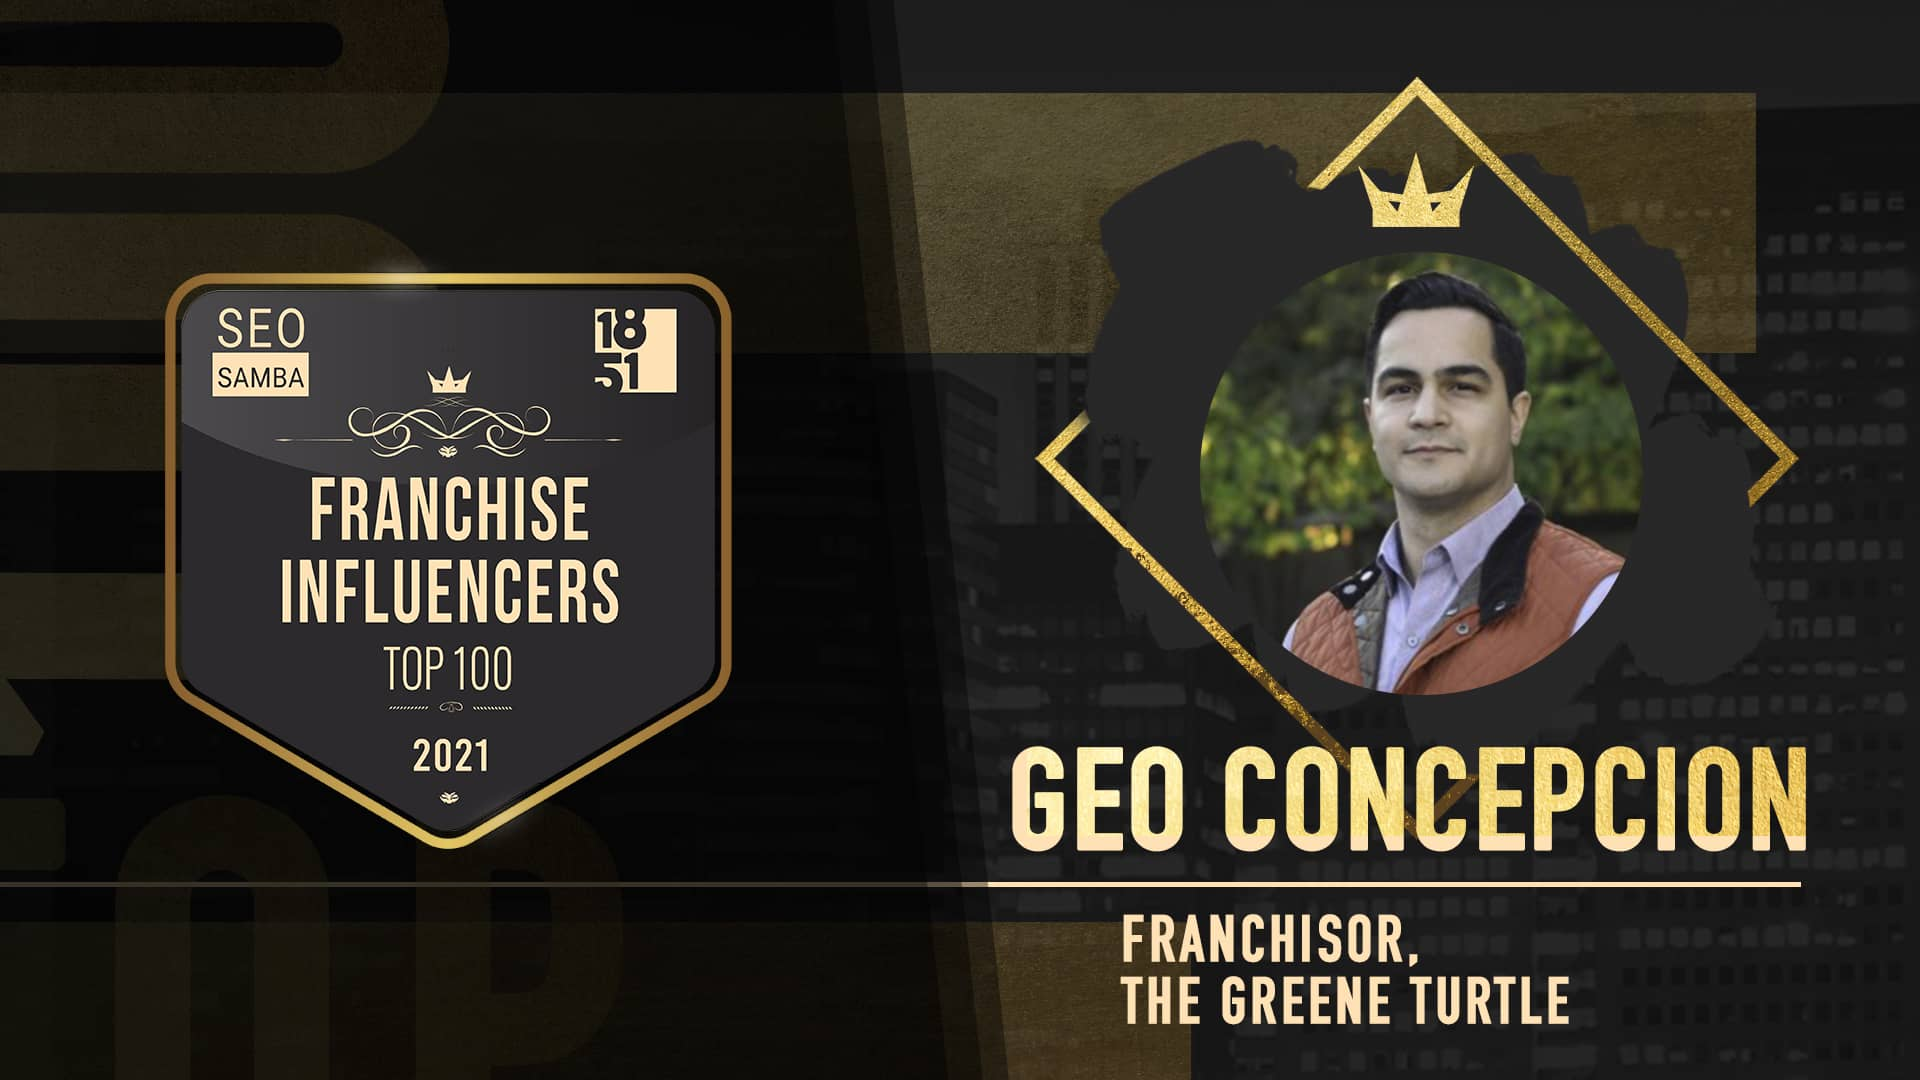 geo-concepcion-the-greene-turtle